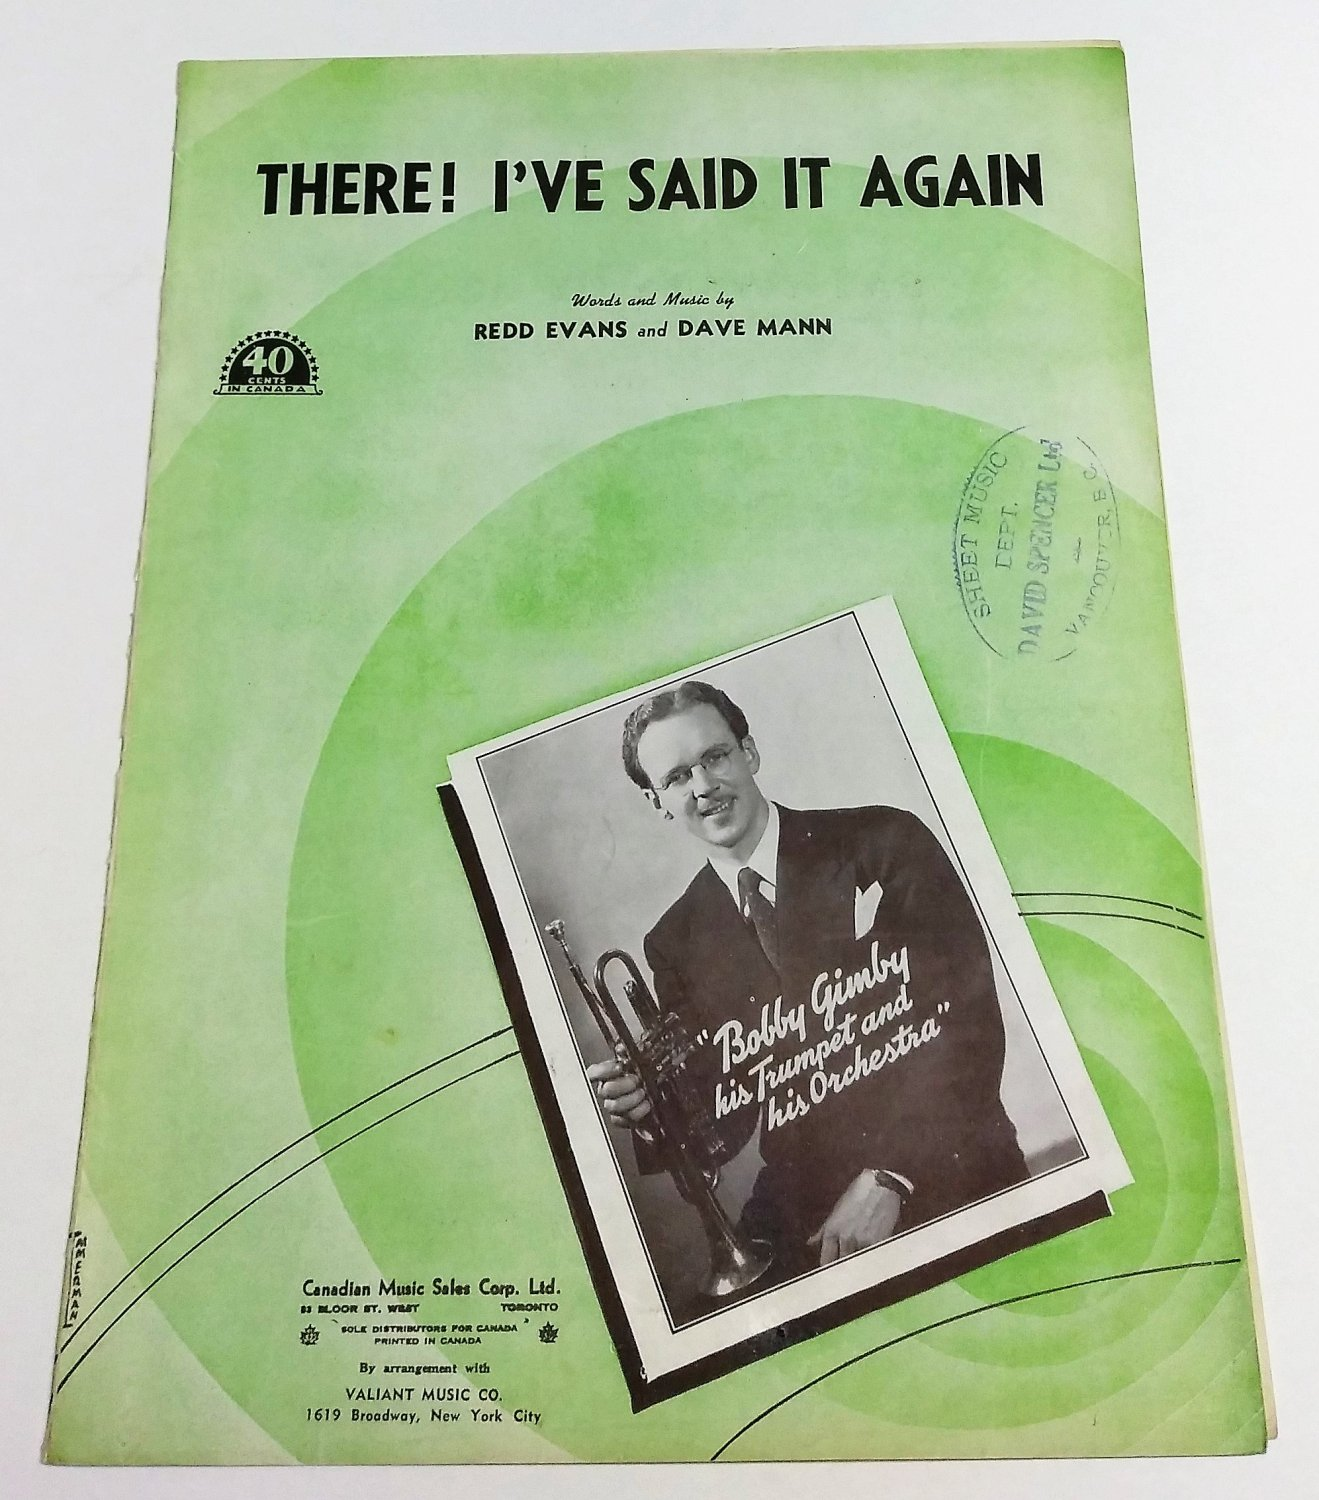 THERE! I'VE SAID IT AGAIN Piano/Vocal Sheet Music BOBBY GIMBY © 1941